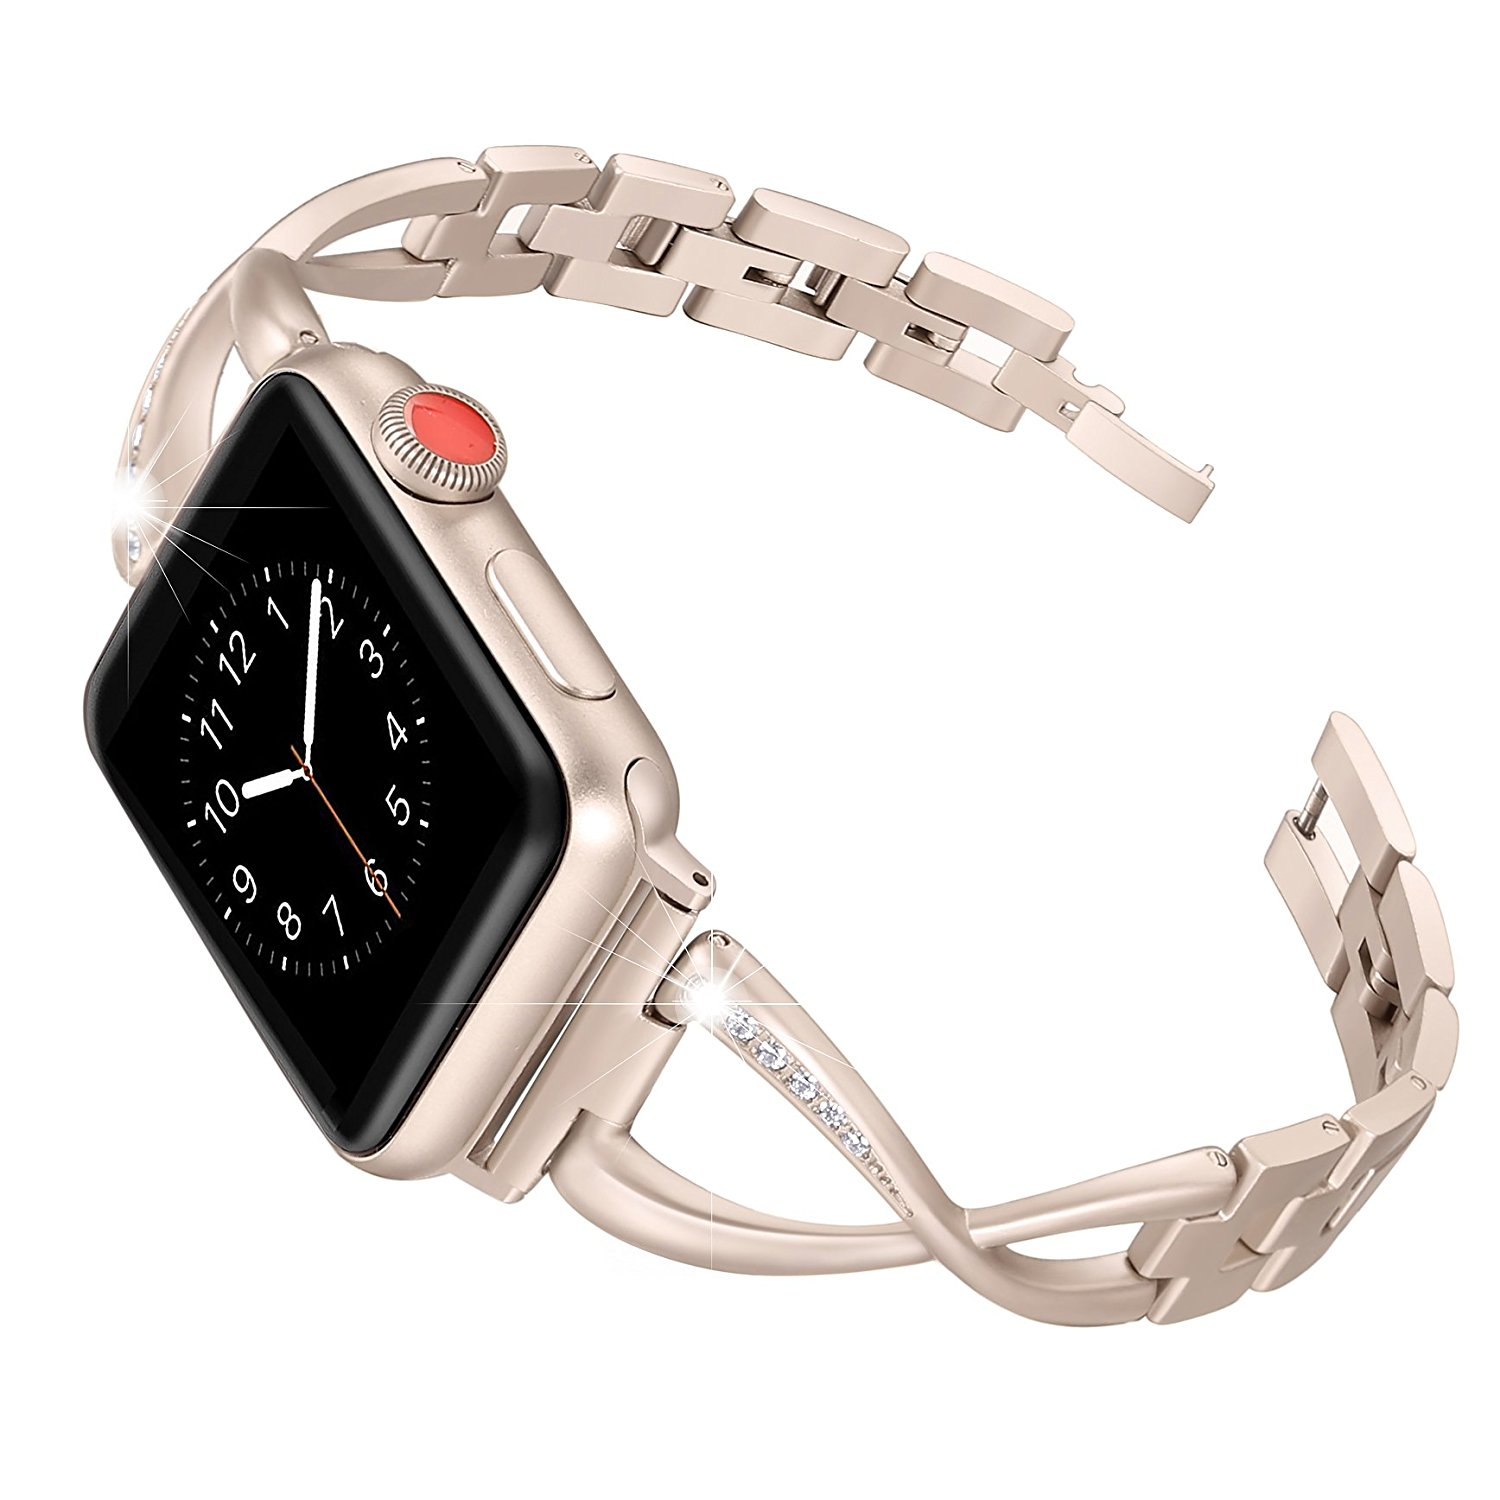 Apple Watch Band Strap Crystal Bling Rhinestone Bracelet Stainless Steel 44Mm/ 40Mm/ 42Mm/ 38Mm For Iwatch Series 1 2 3 4